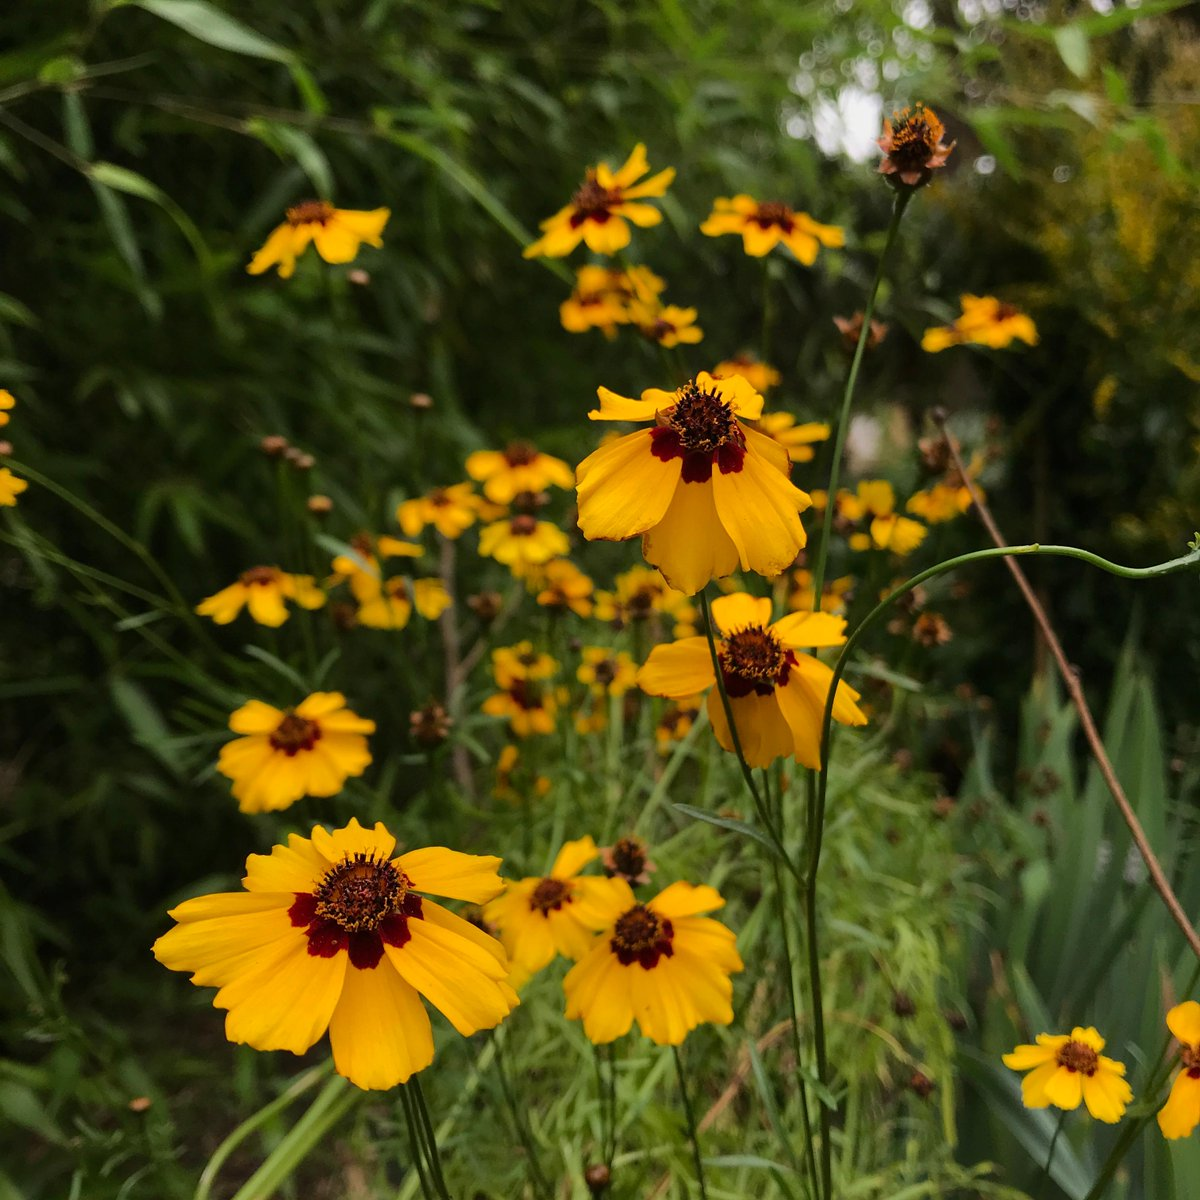 Coreopsis tinctoria is also known as Dyer's tickseed. Originating from North America, this plant can be used for dying and are grown for the colour pigments contained in its flowers. #botanicgarden #gardens #plants #horticulture